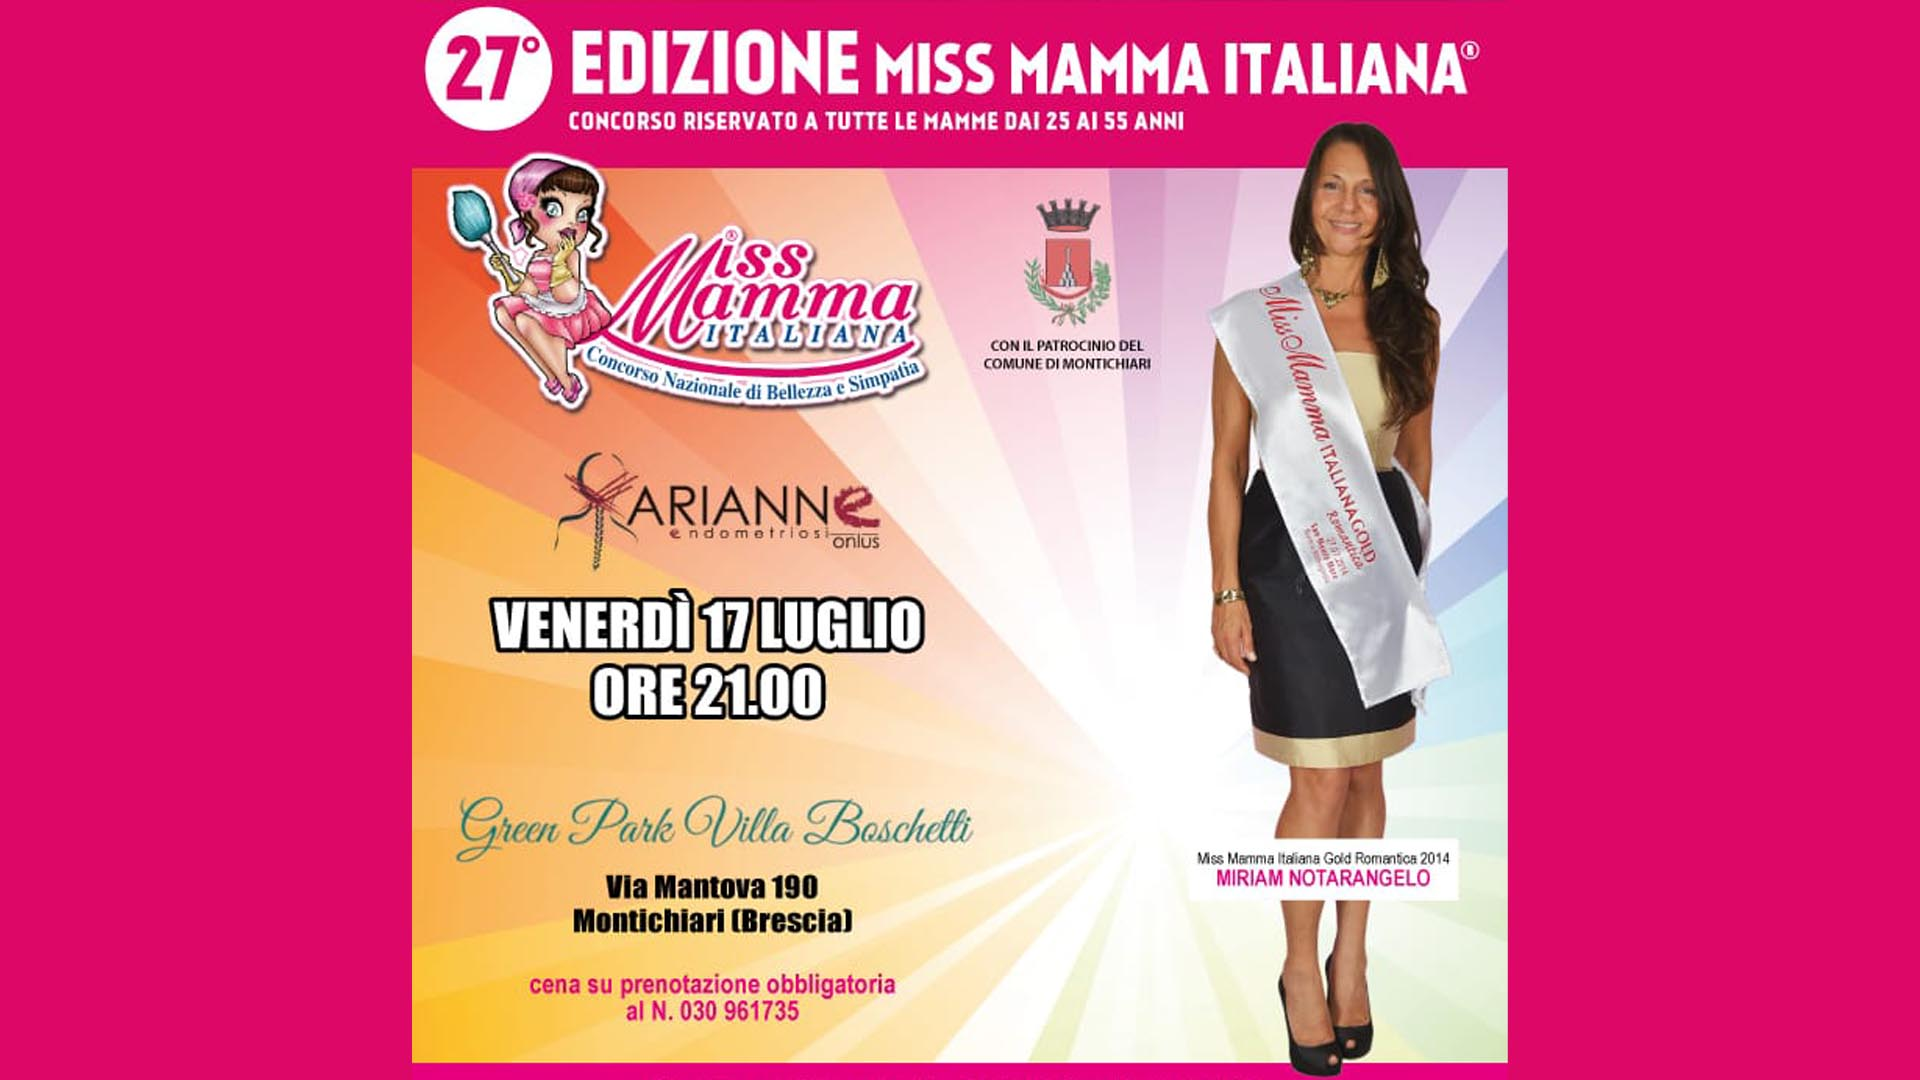 Miss Mamma Italiana 27 Cover